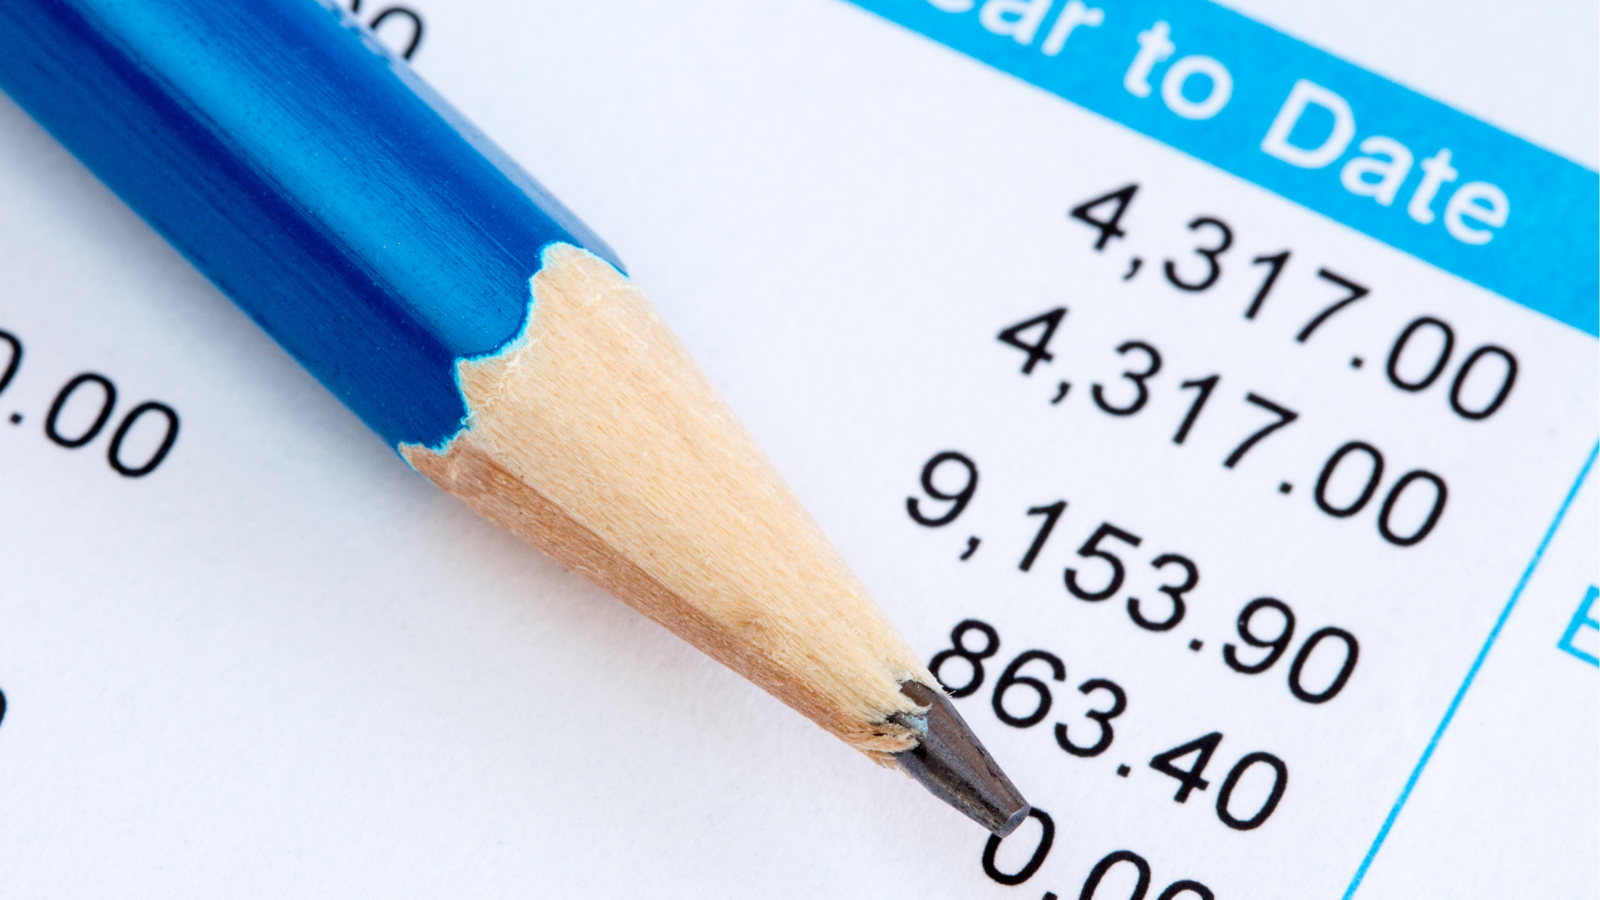 Payroll data is key to garnering effective insights into your processes.